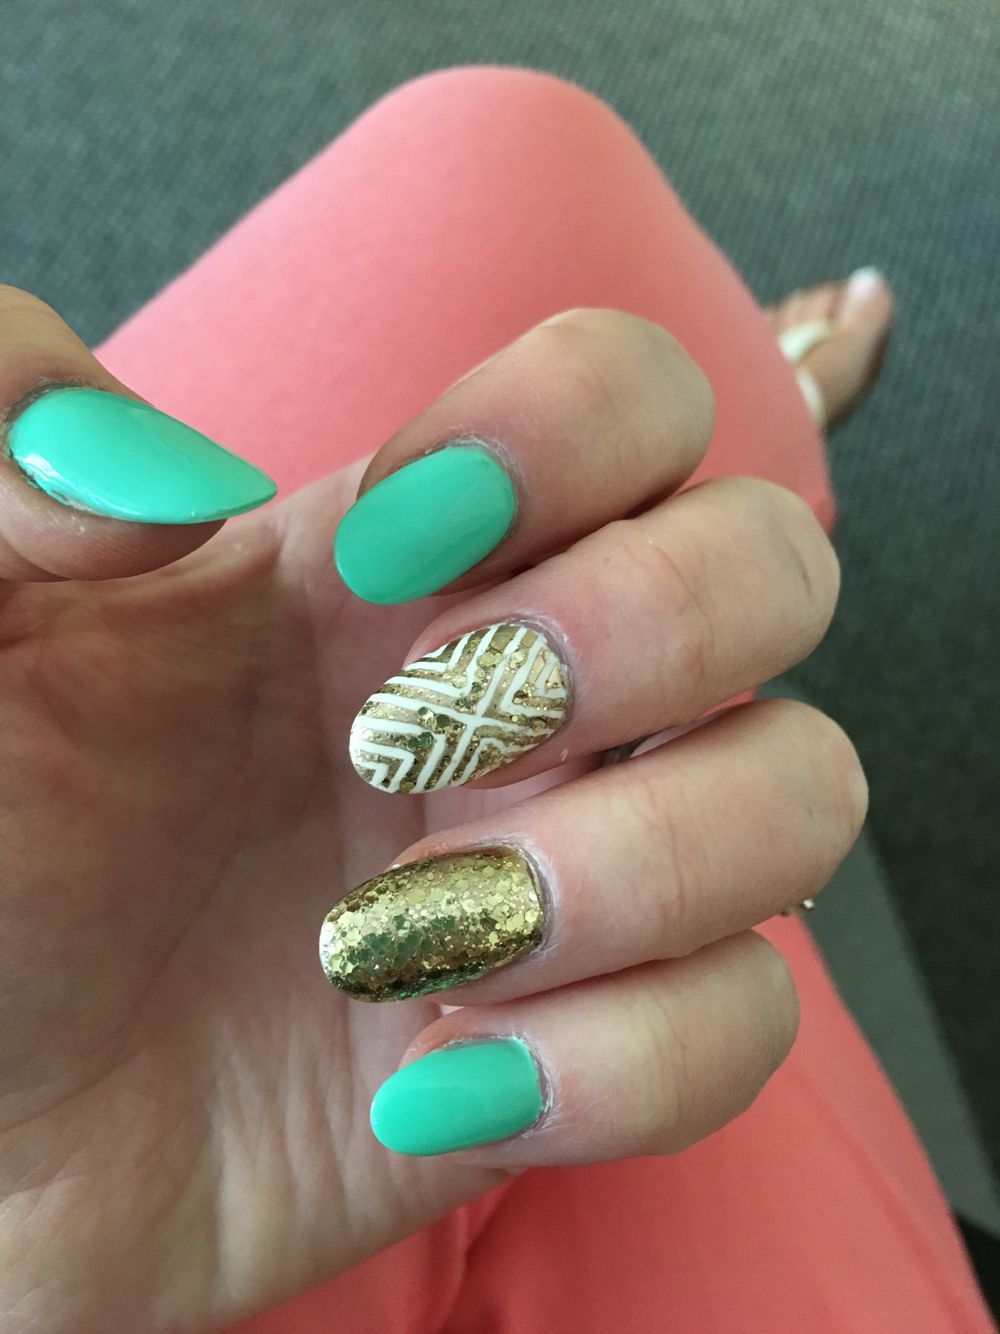 Aqua Gold Summer Nail Design My Very Own Creations Pinterest